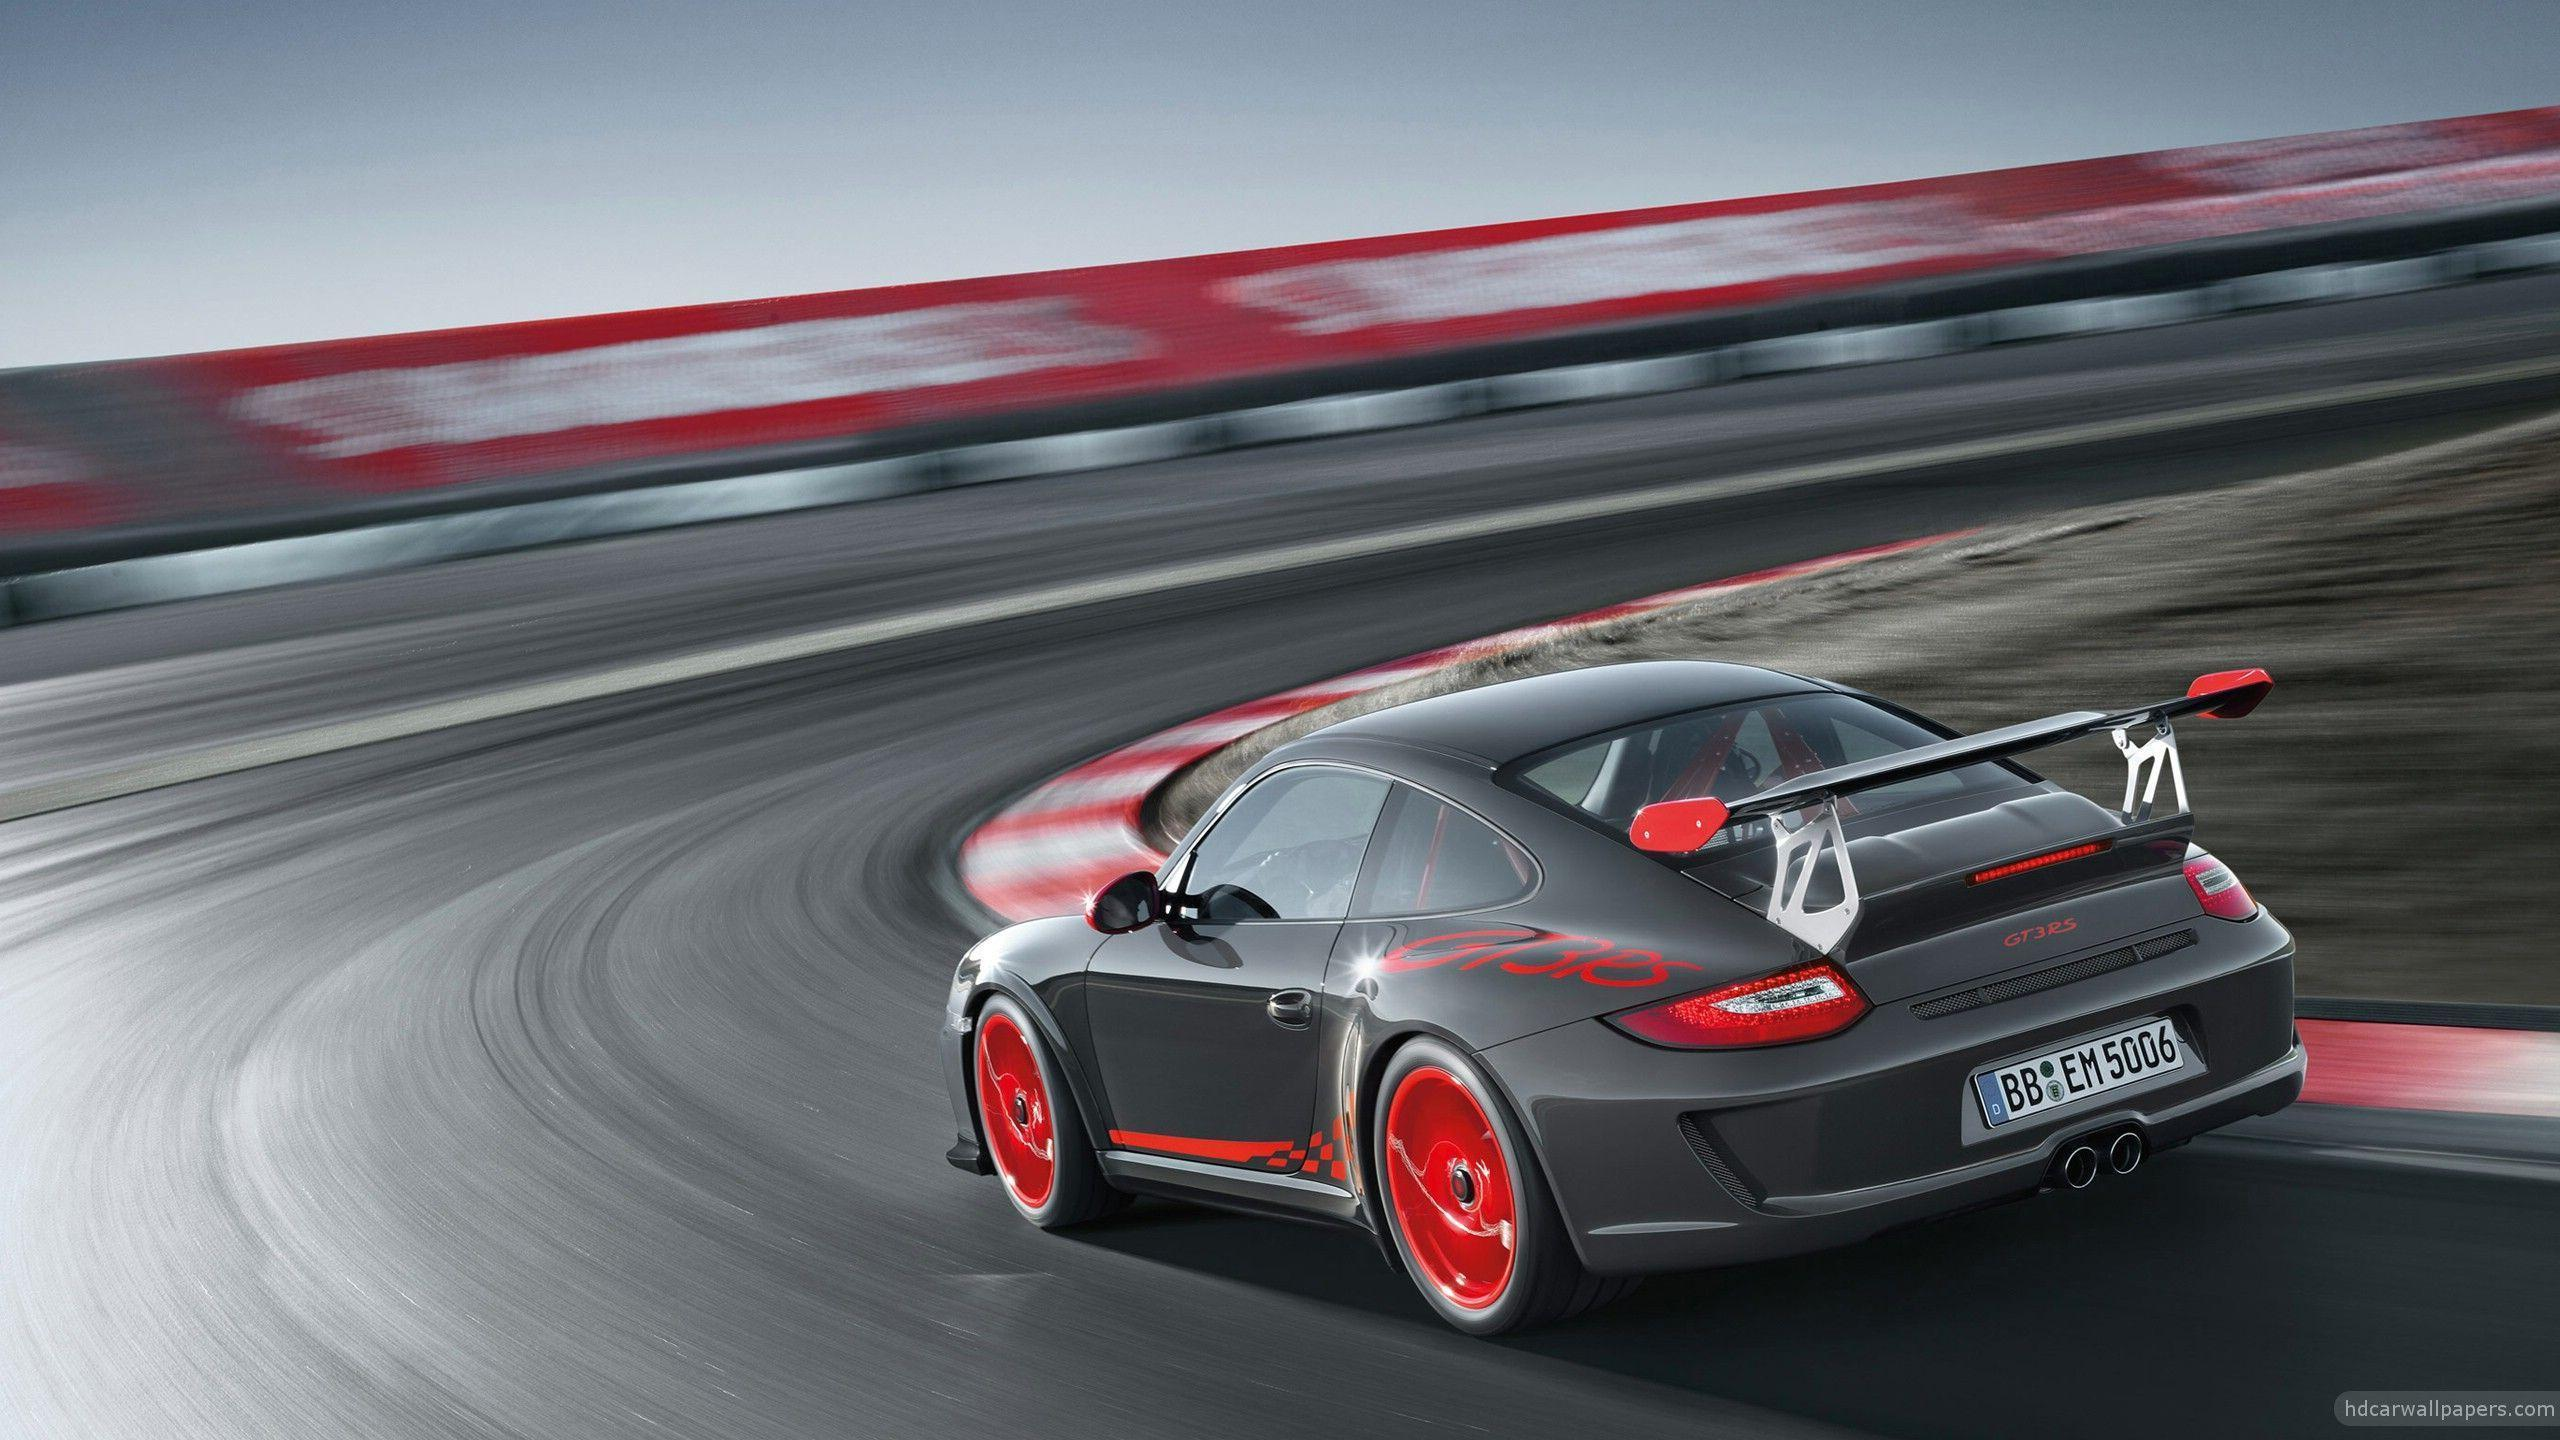 Porsche 911 GT3 RS Wallpapers 2560x1600 px Free Download